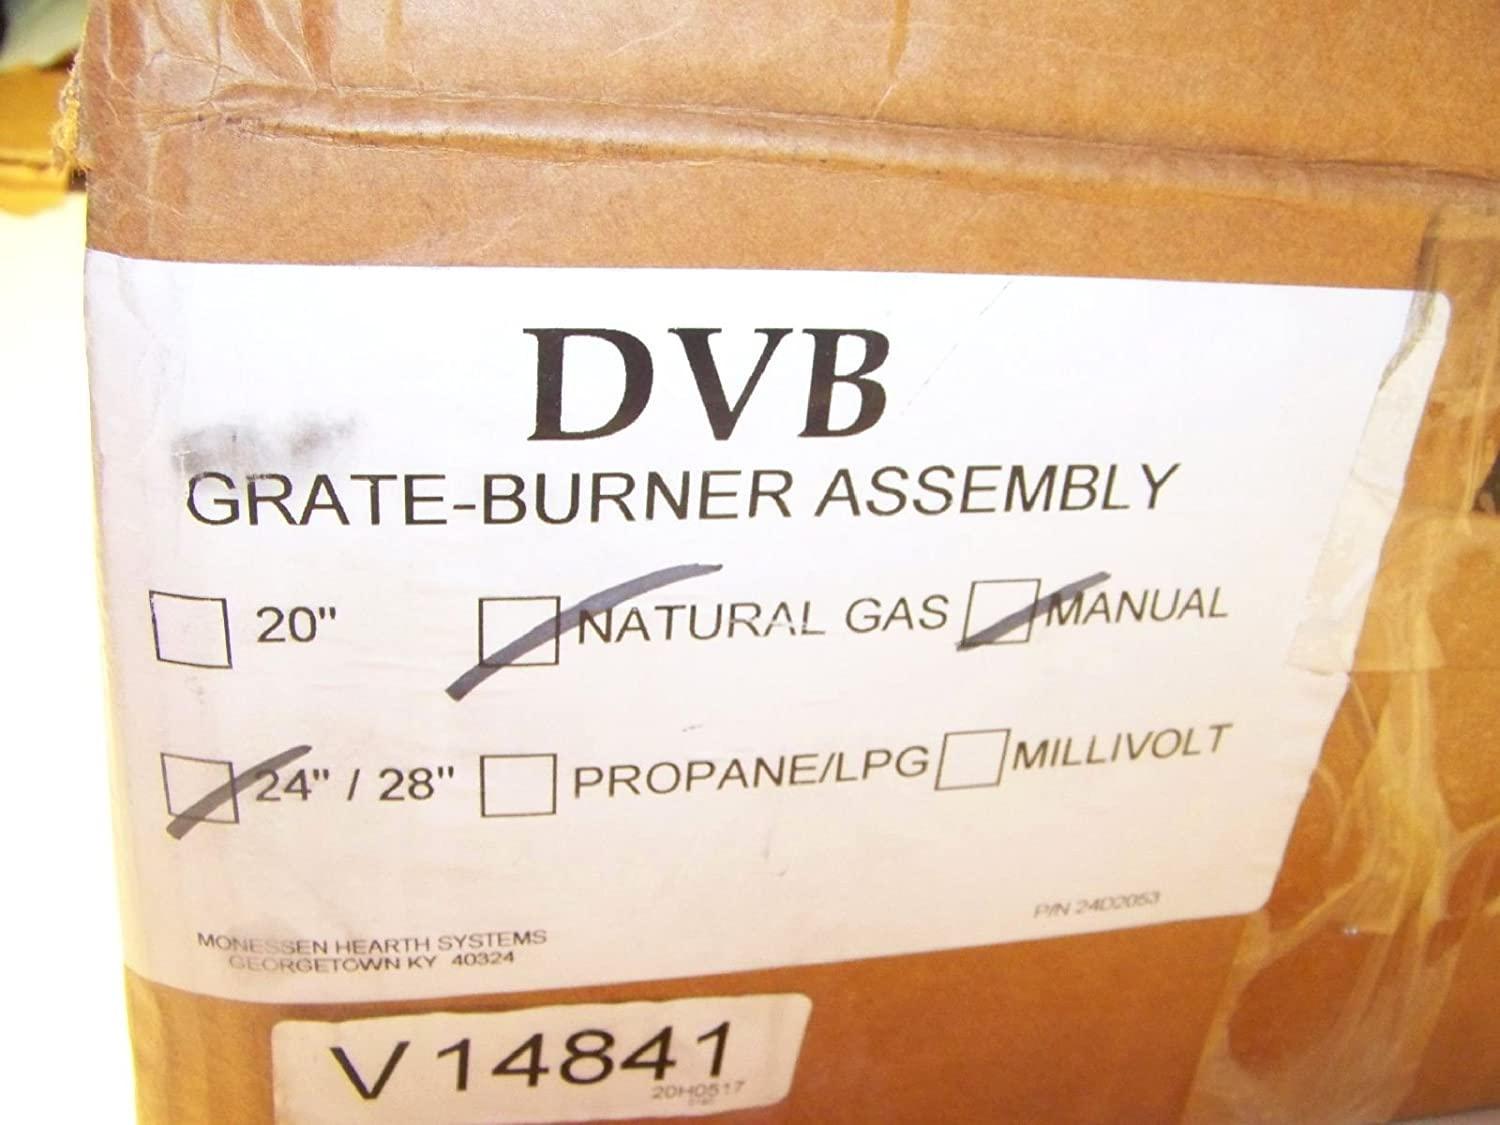 Amazon.com: Monessen DVB24NM Natural Gas Fireplace Grate Burner Assembly: Home & Kitchen